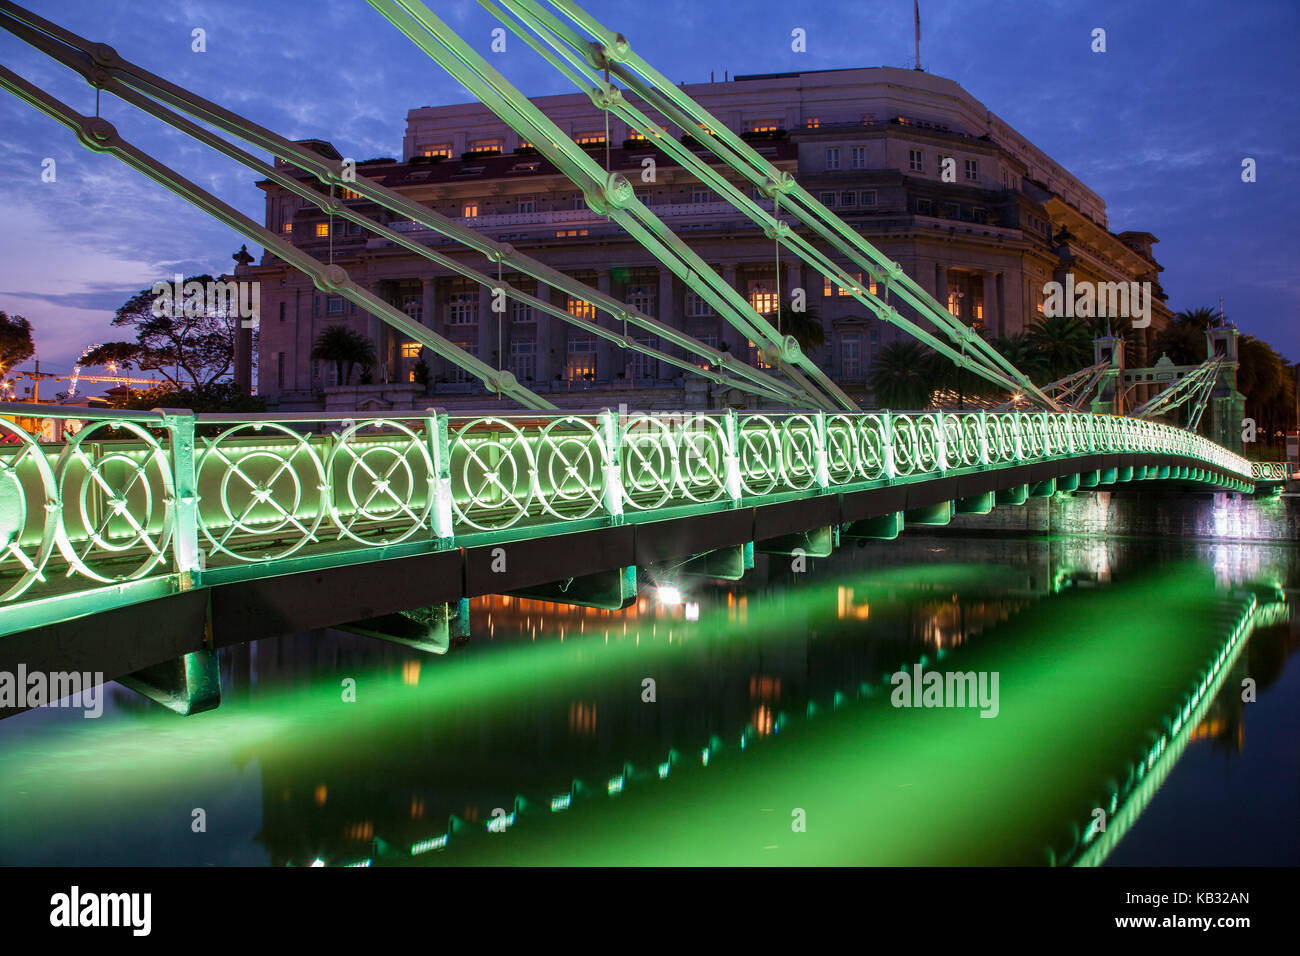 Brightly lit Cavenagh Bridge is one of the oldest bridges and the only cable-stayed suspension bridge in Singapore, - Stock Image